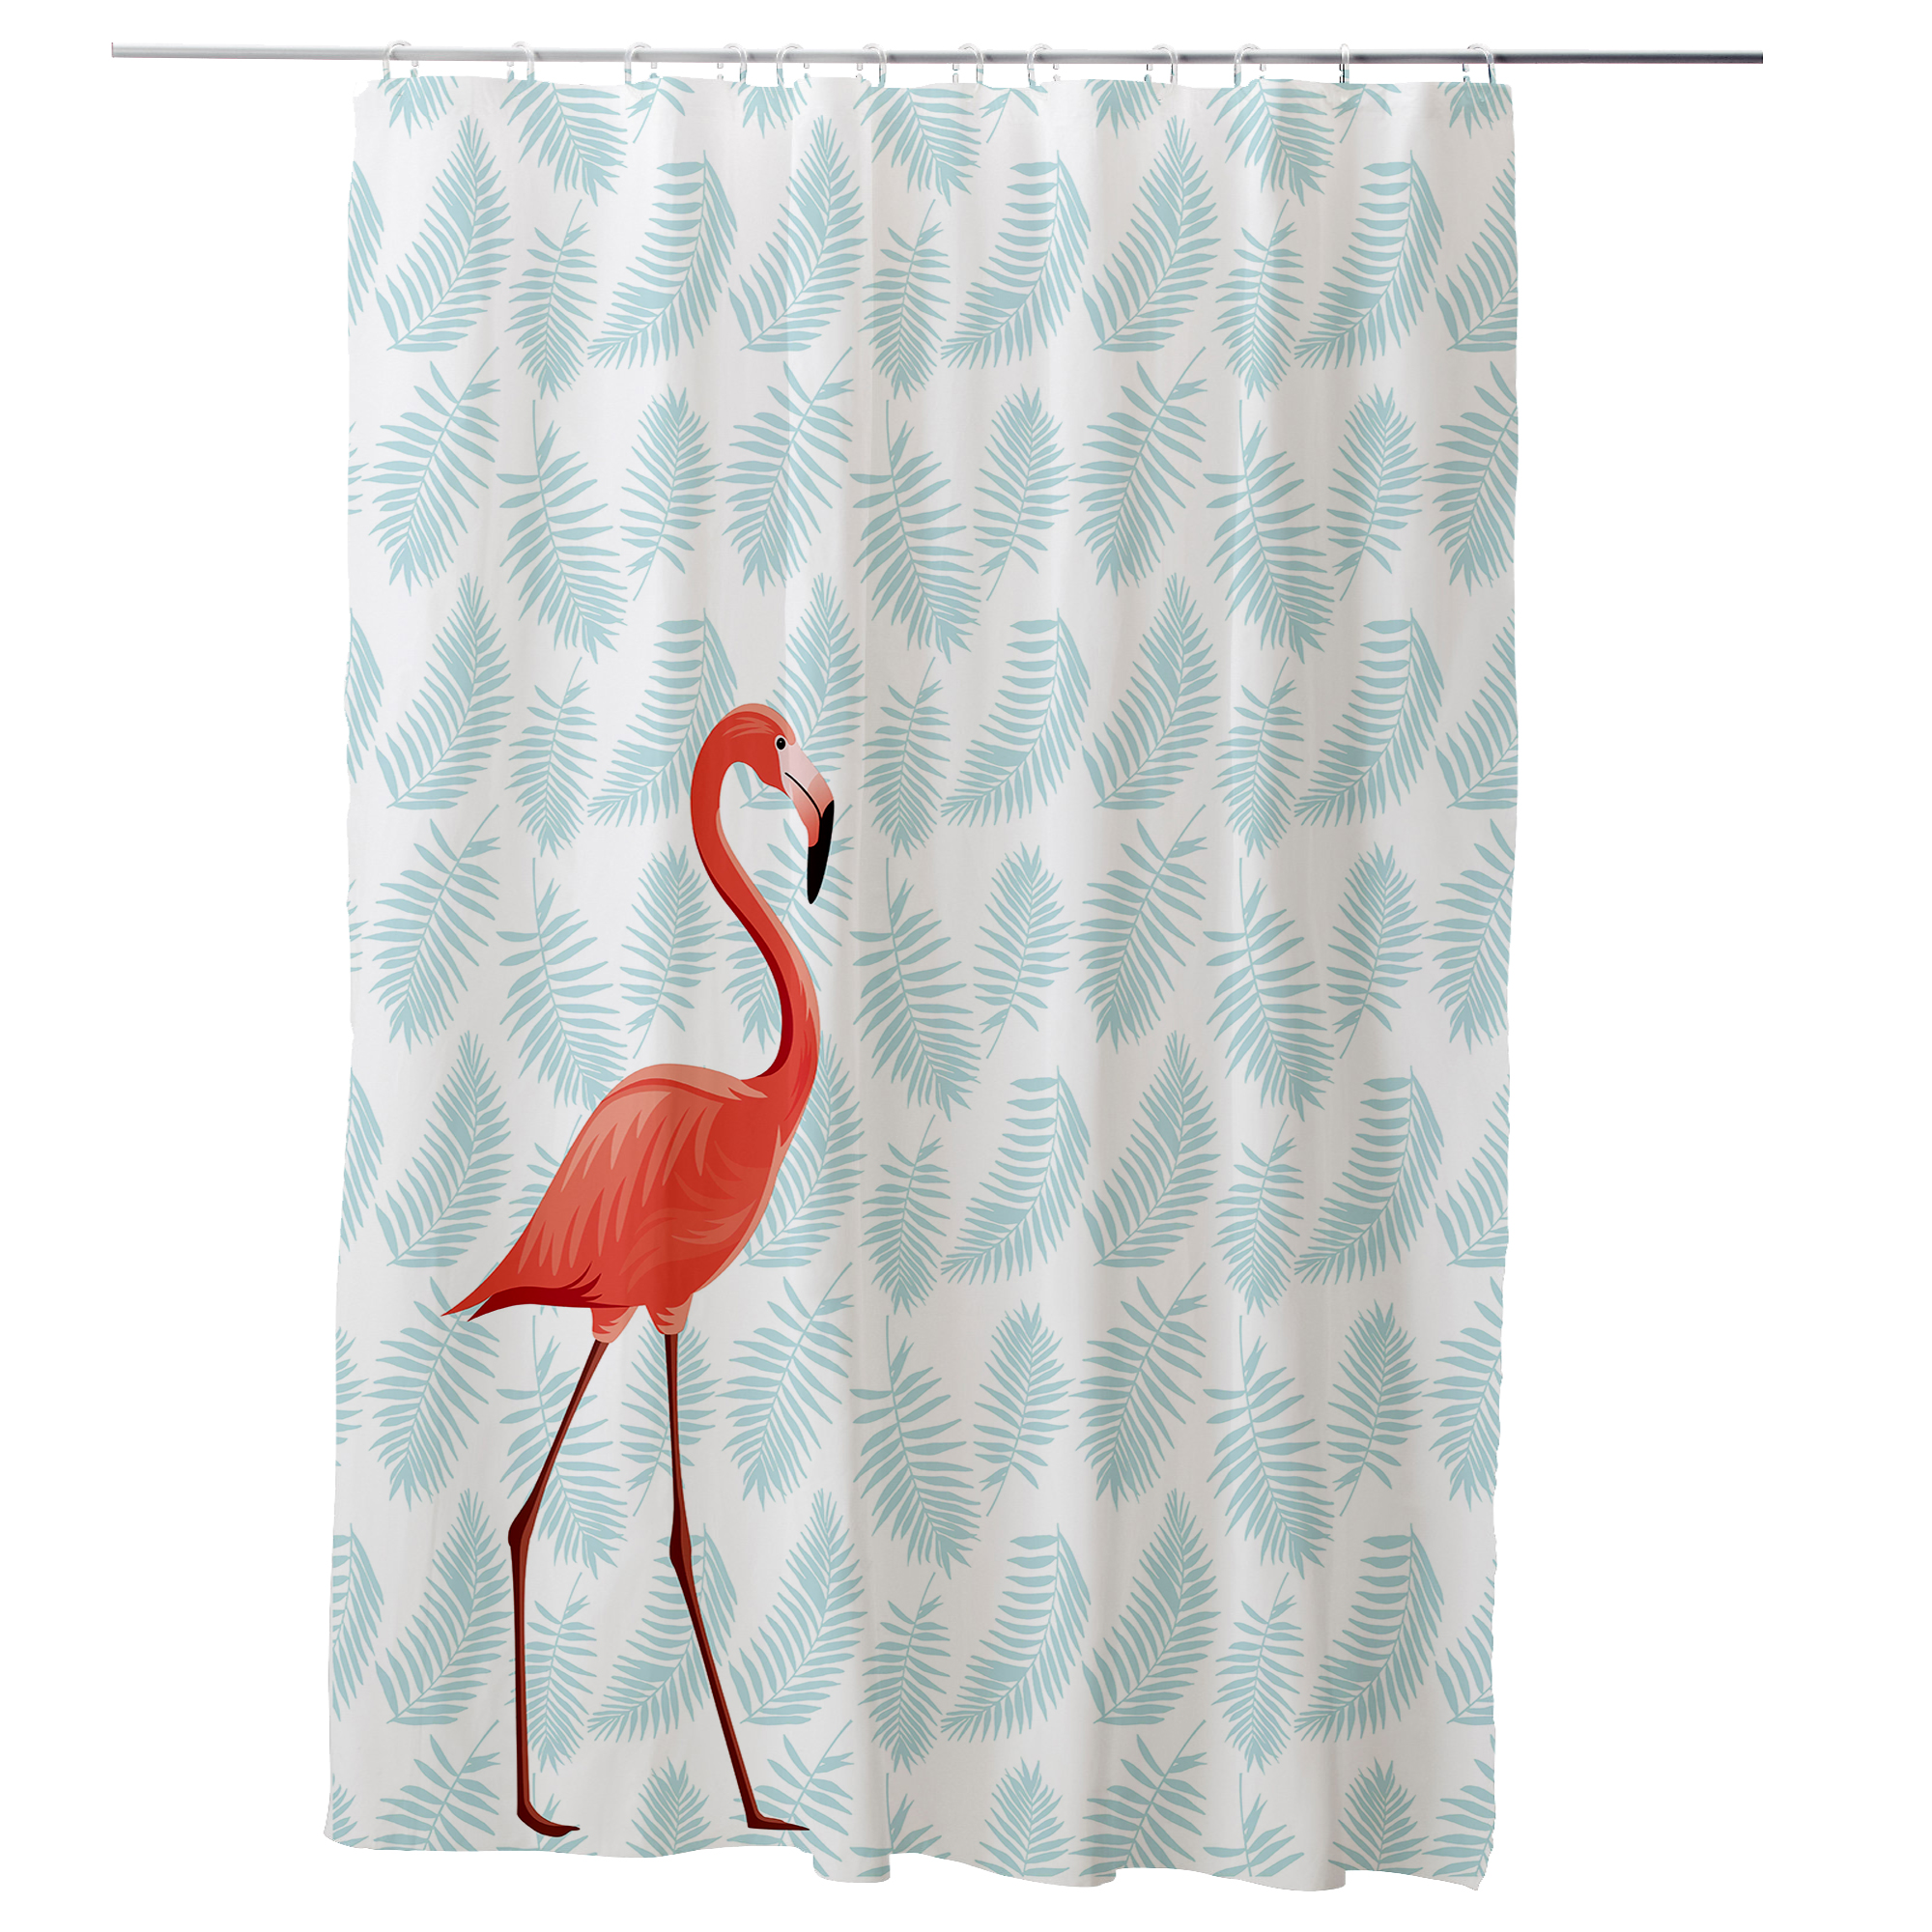 Us 17 28 46 Off 180cm 200cm Flamingo Bathroom Waterproof Mildew Proof Shower Curtain With Curtain Hooks Rings In Shower Curtains From Home Garden